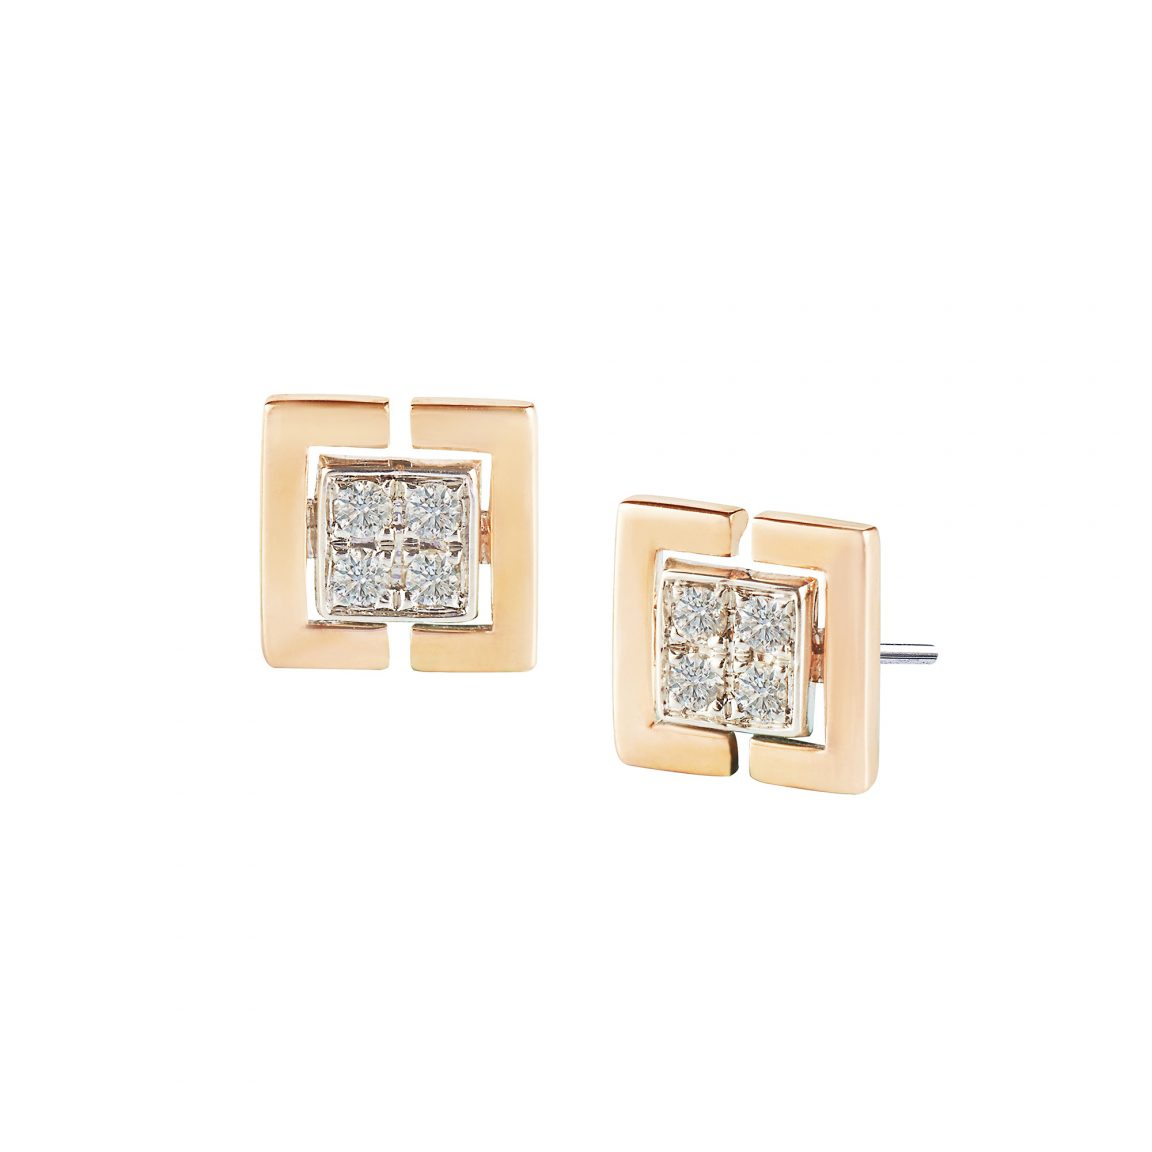 Soleluna's ASTRA Diamond Earrings